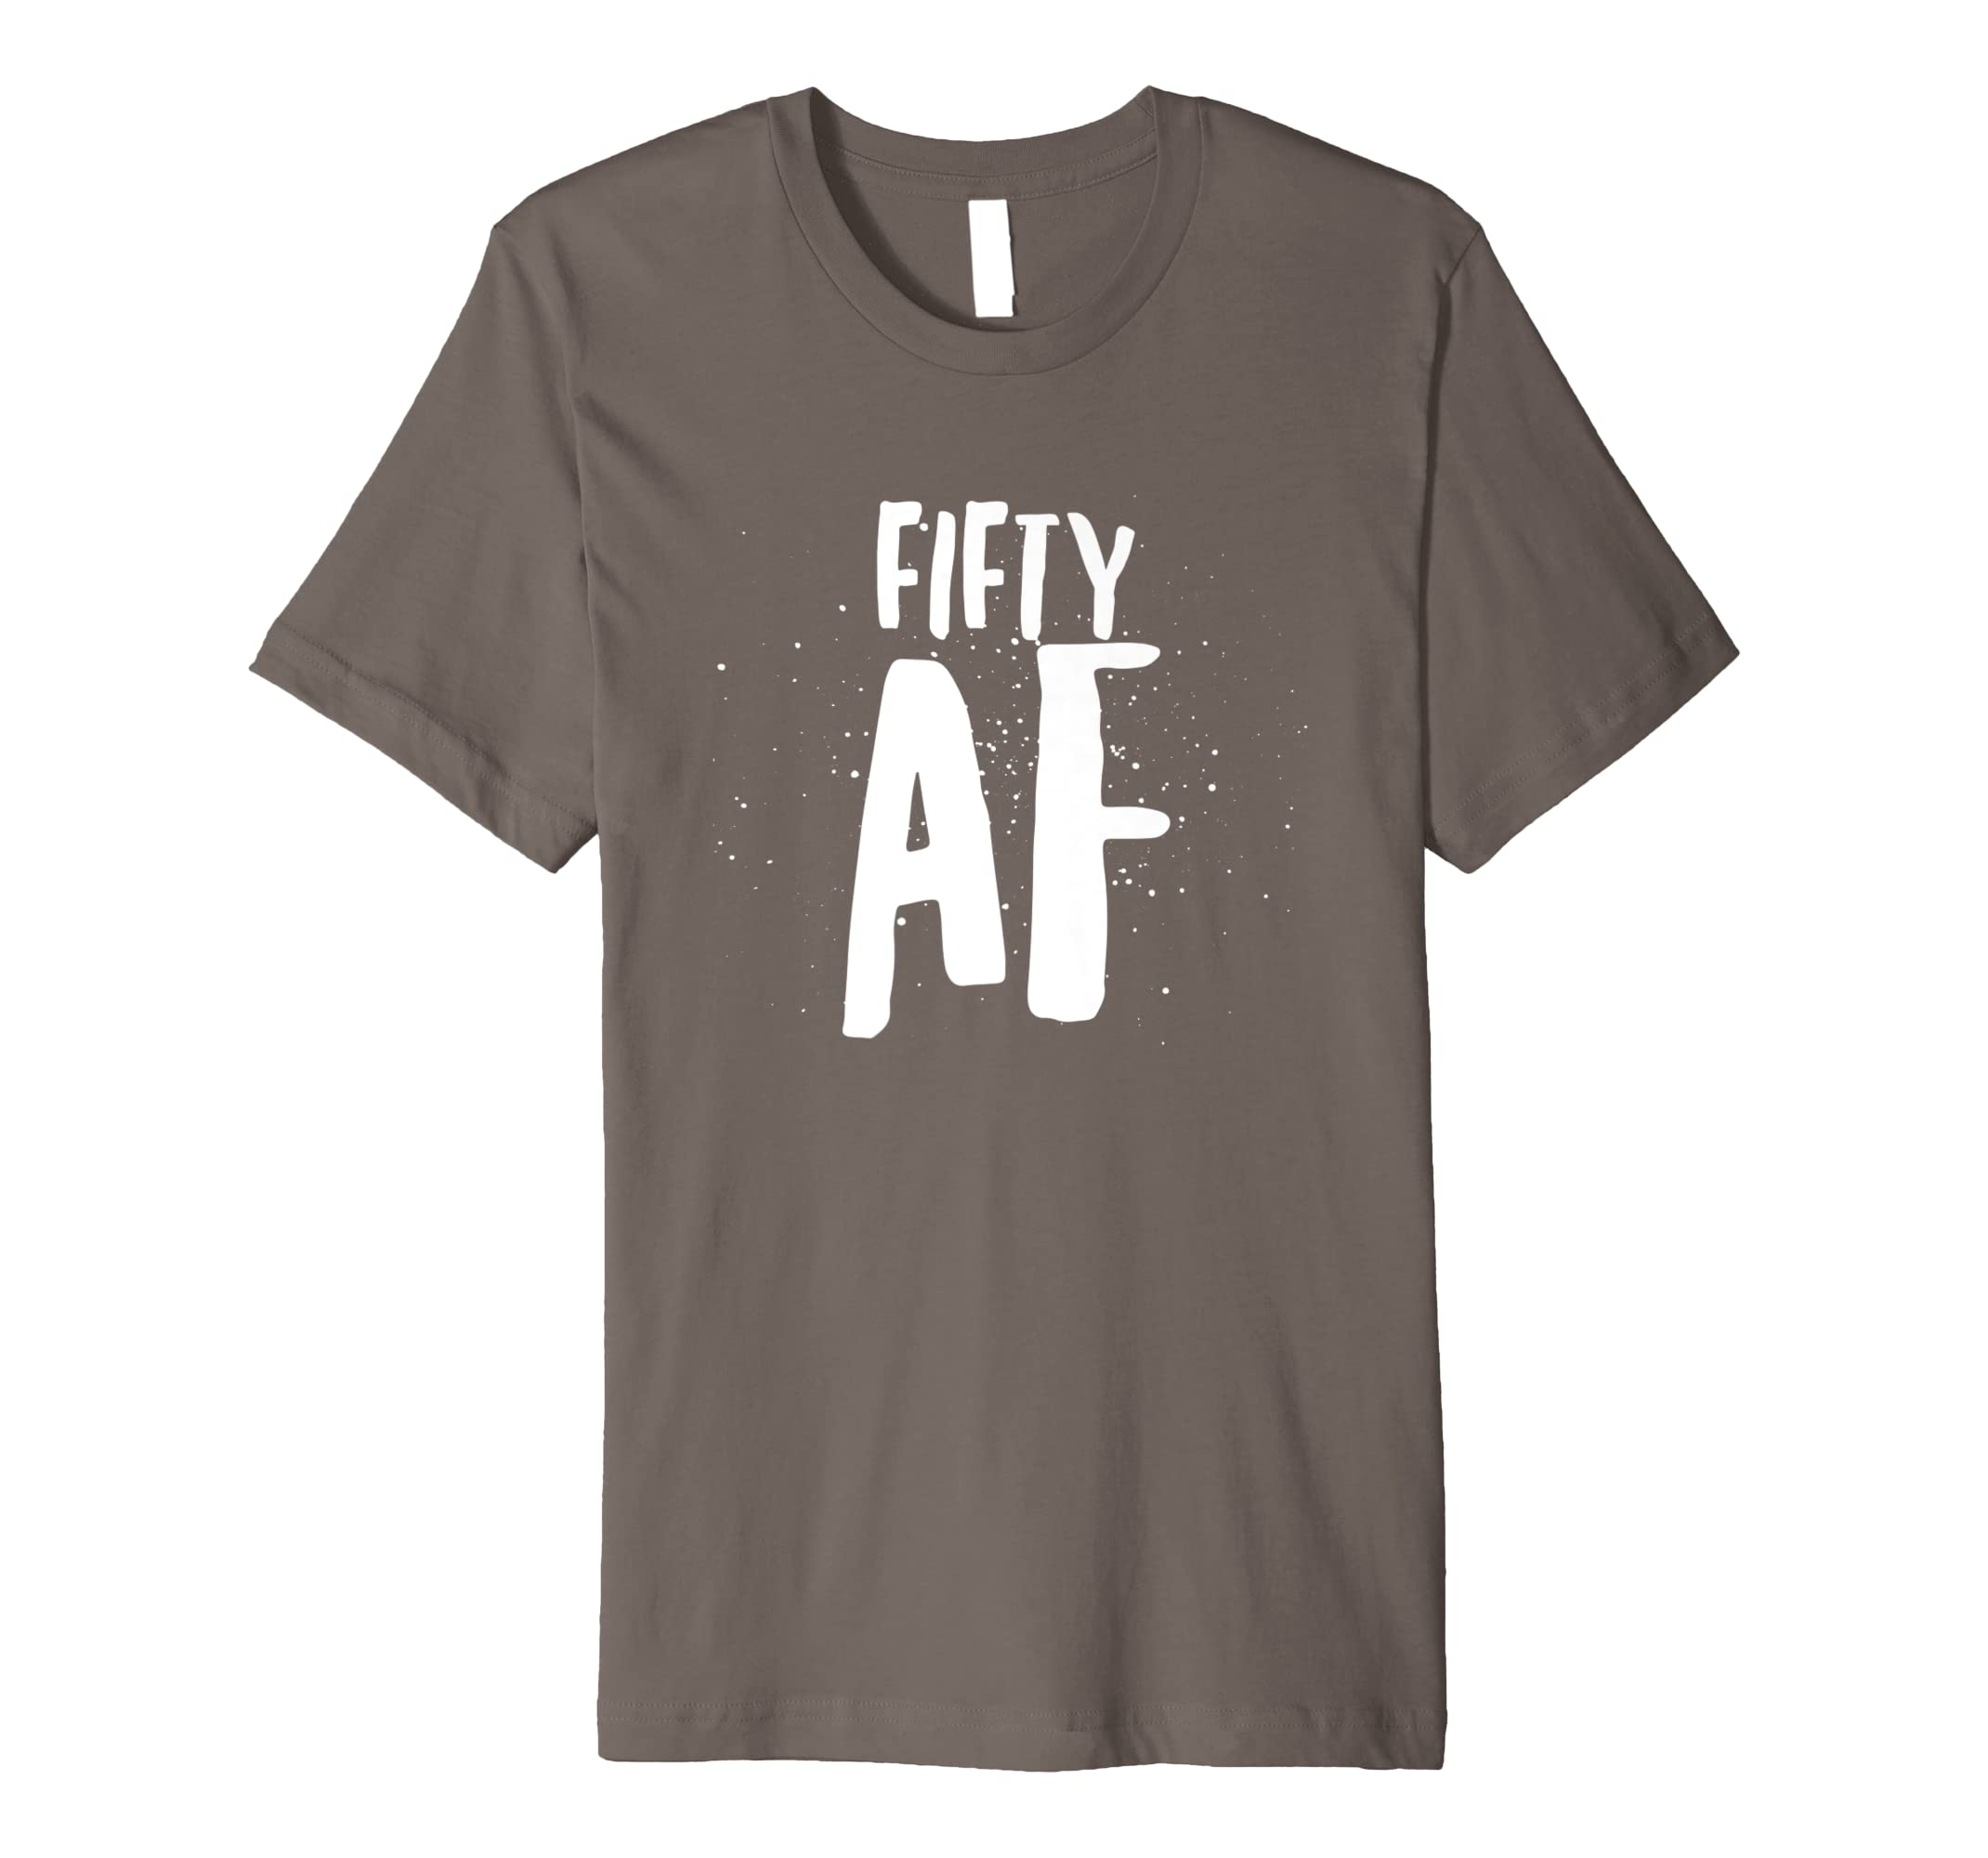 Amazon Fifty AF Shirt Funny 50th Birthday Tee T Gift Idea Clothing